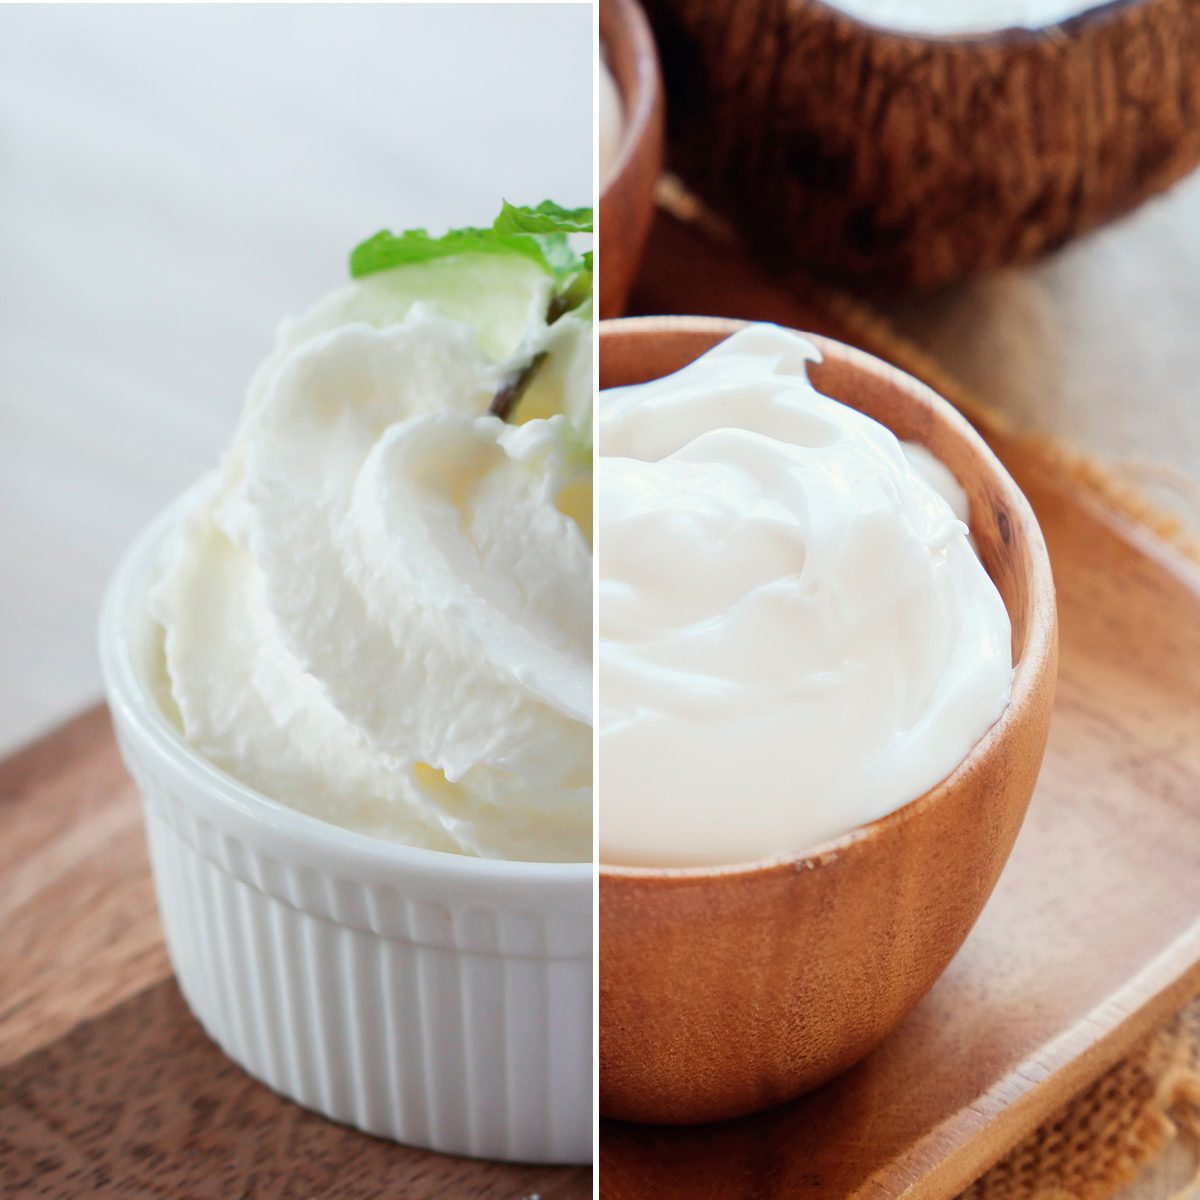 homemade organic coconut greek yogurt in wooden bowl; Shutterstock ID 791083180; Job (TFH, TOH, RD, BNB, CWM, CM): TOH Whipped cream with peppermint leafs in ceramic cup ; Shutterstock ID 633226634; Job (TFH, TOH, RD, BNB, CWM, CM): TOH